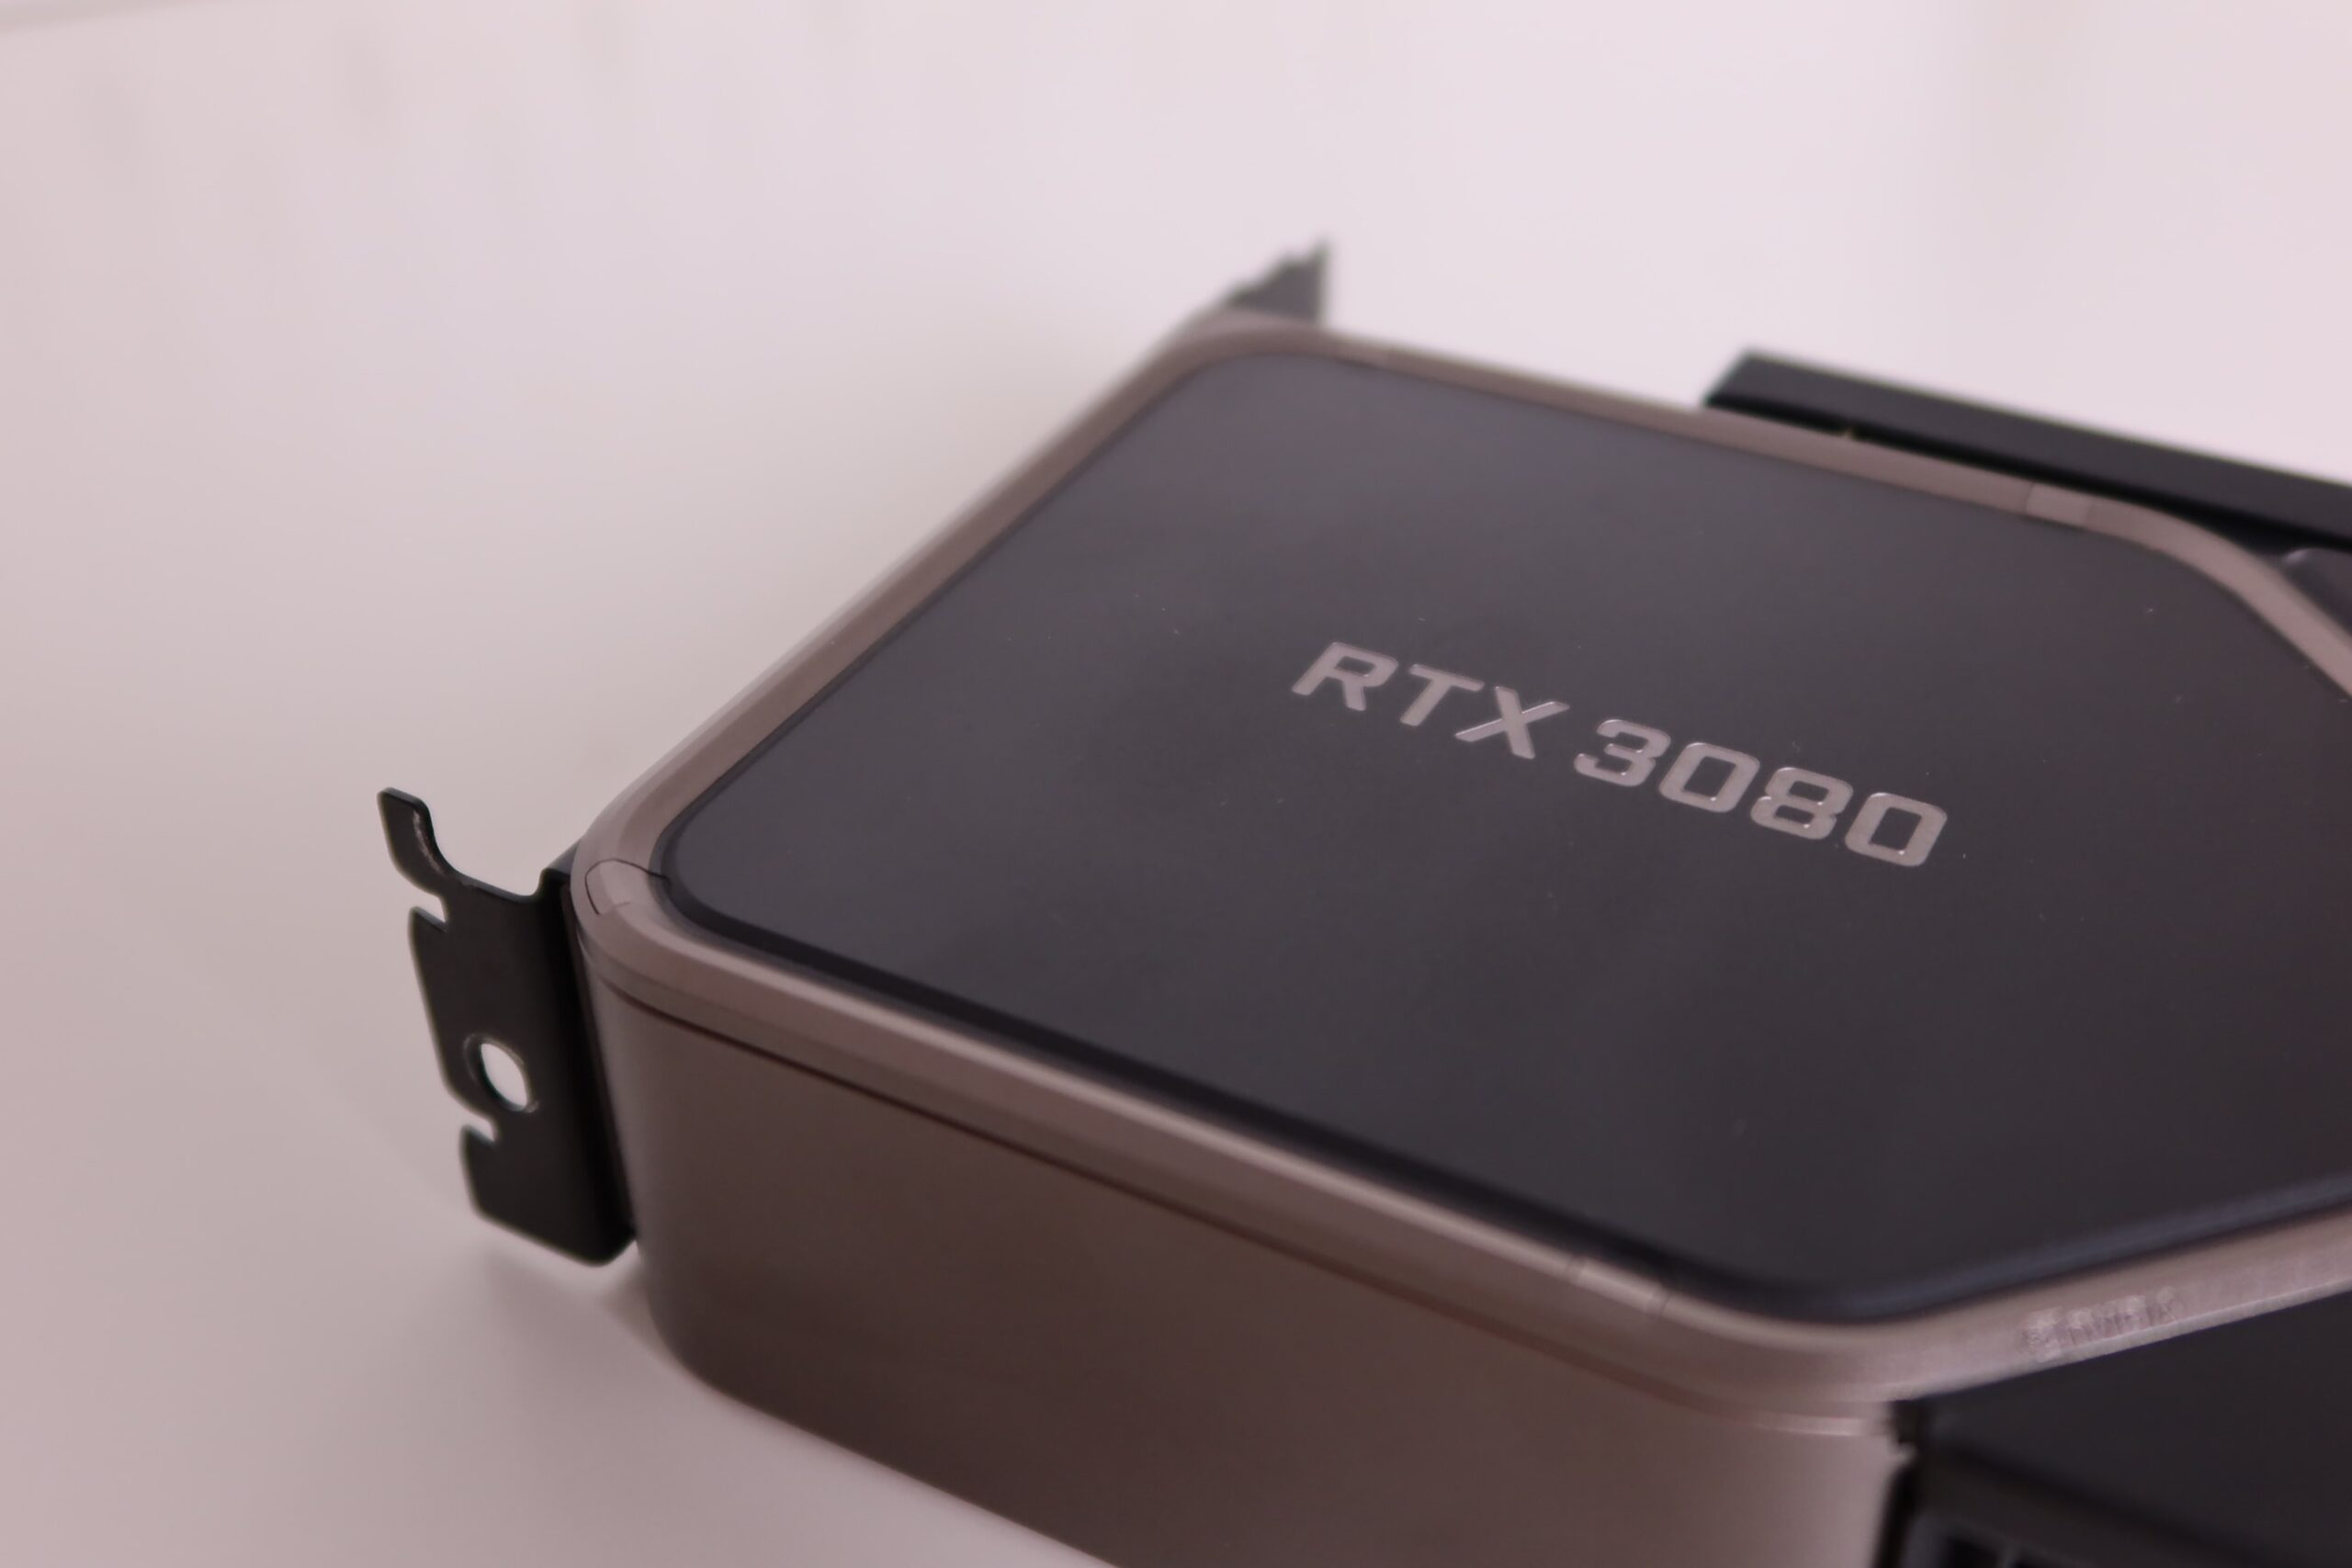 Review NVIDIA GeForce RTX 3080 Founders Edition